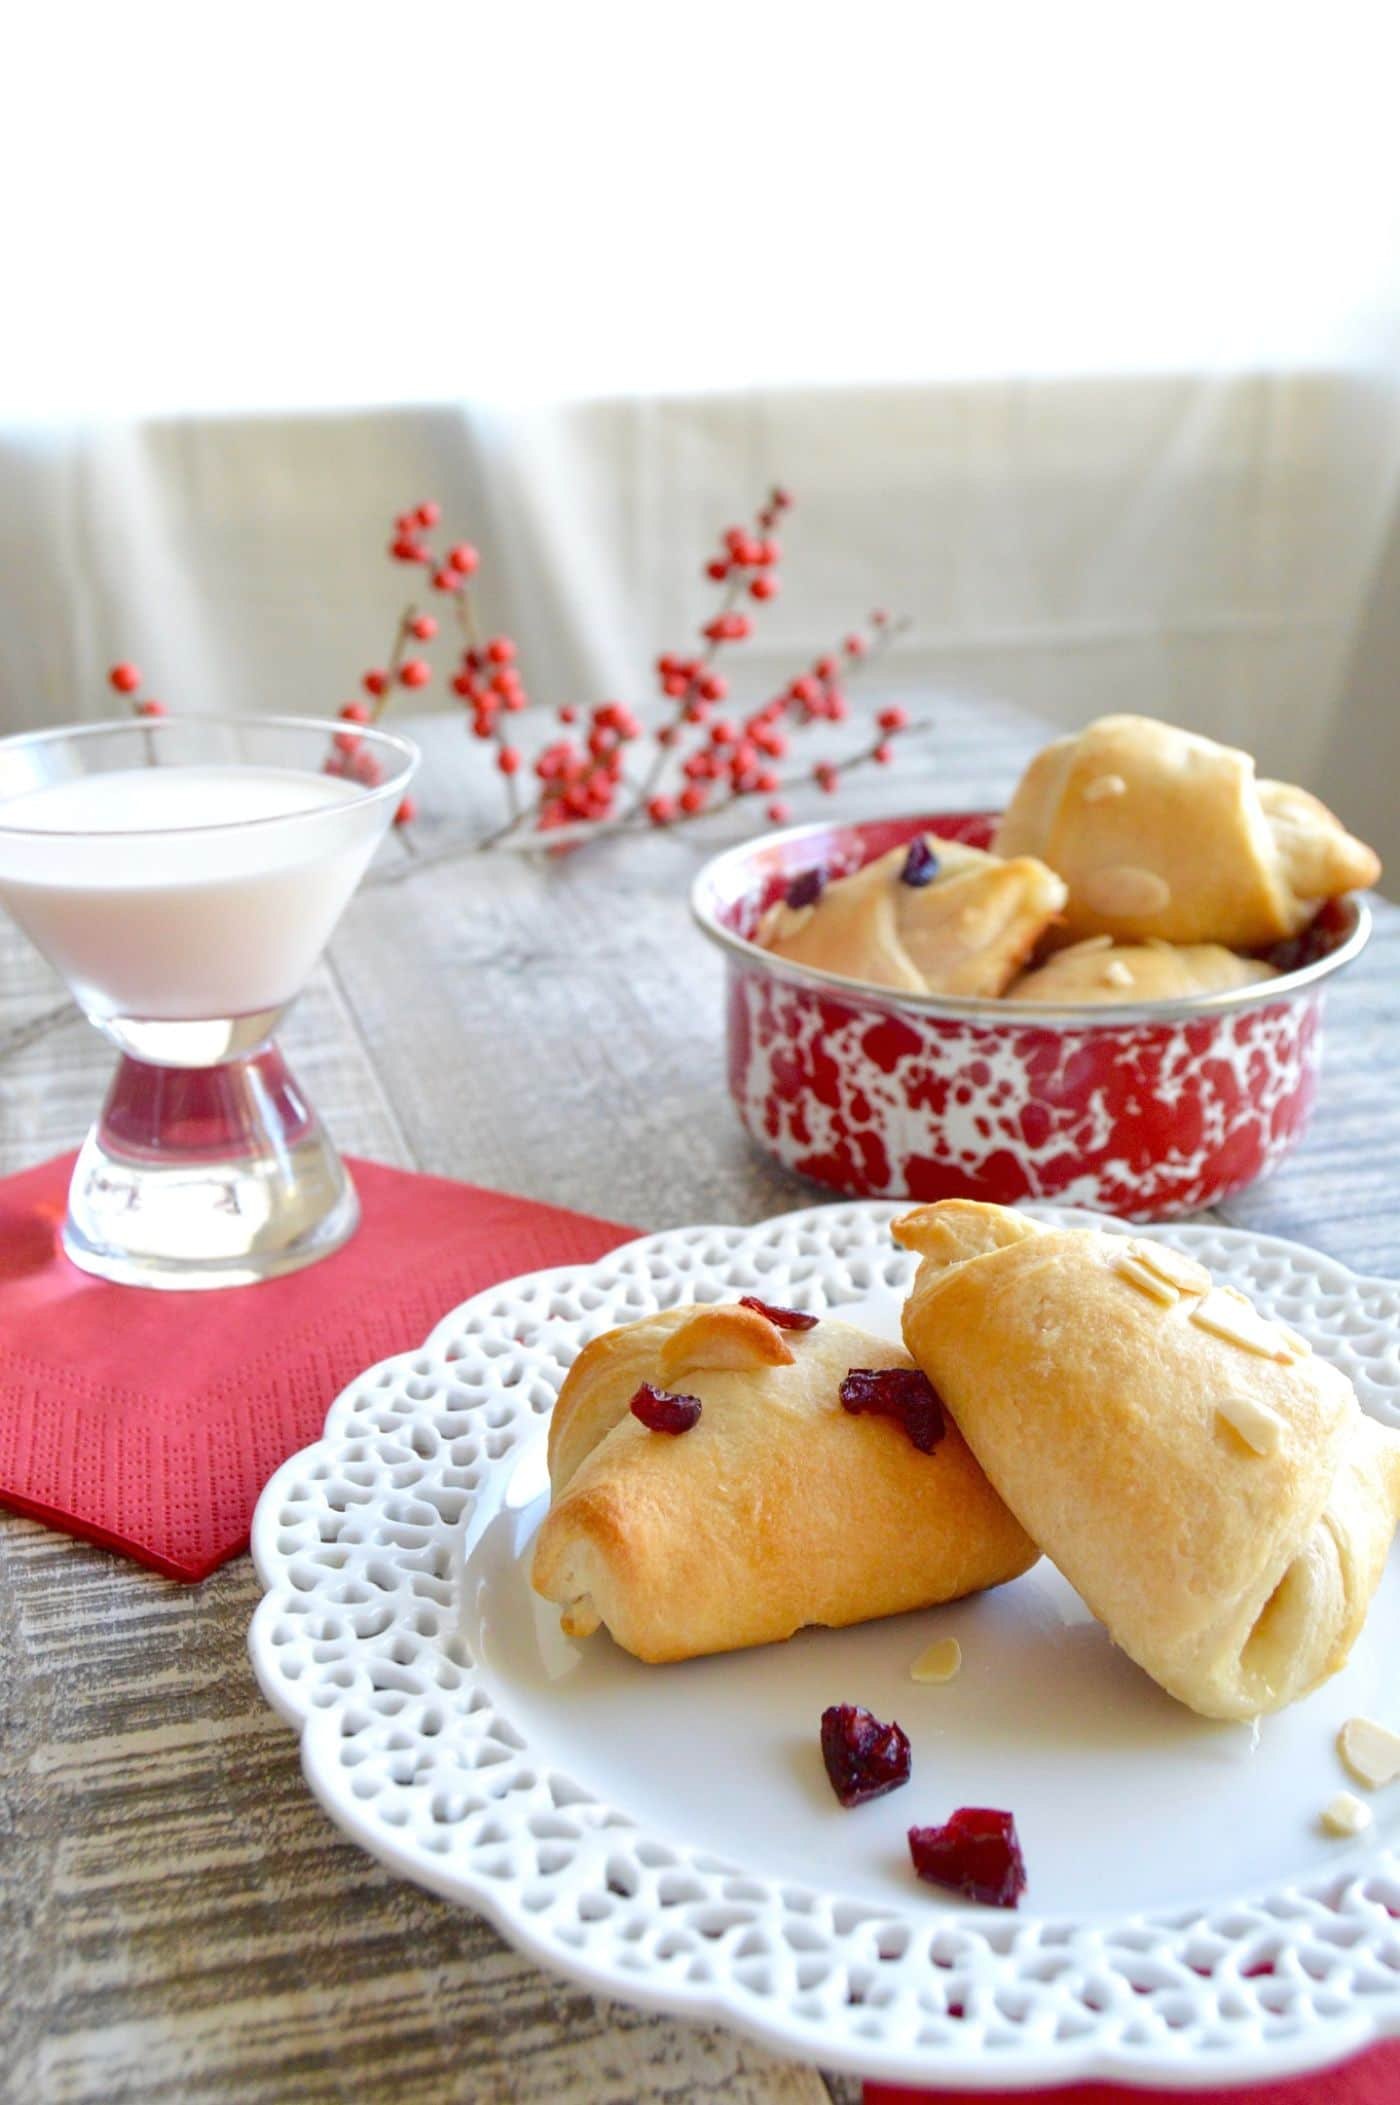 Party Brie Cheese Crescent Bites are ready in no time! Filled with Melty brie cheese, tart cranberries or nuts, baked in flaky pastry then drizzled with a bit of sweet sticky honey! These are perfect for last minute gatherings!